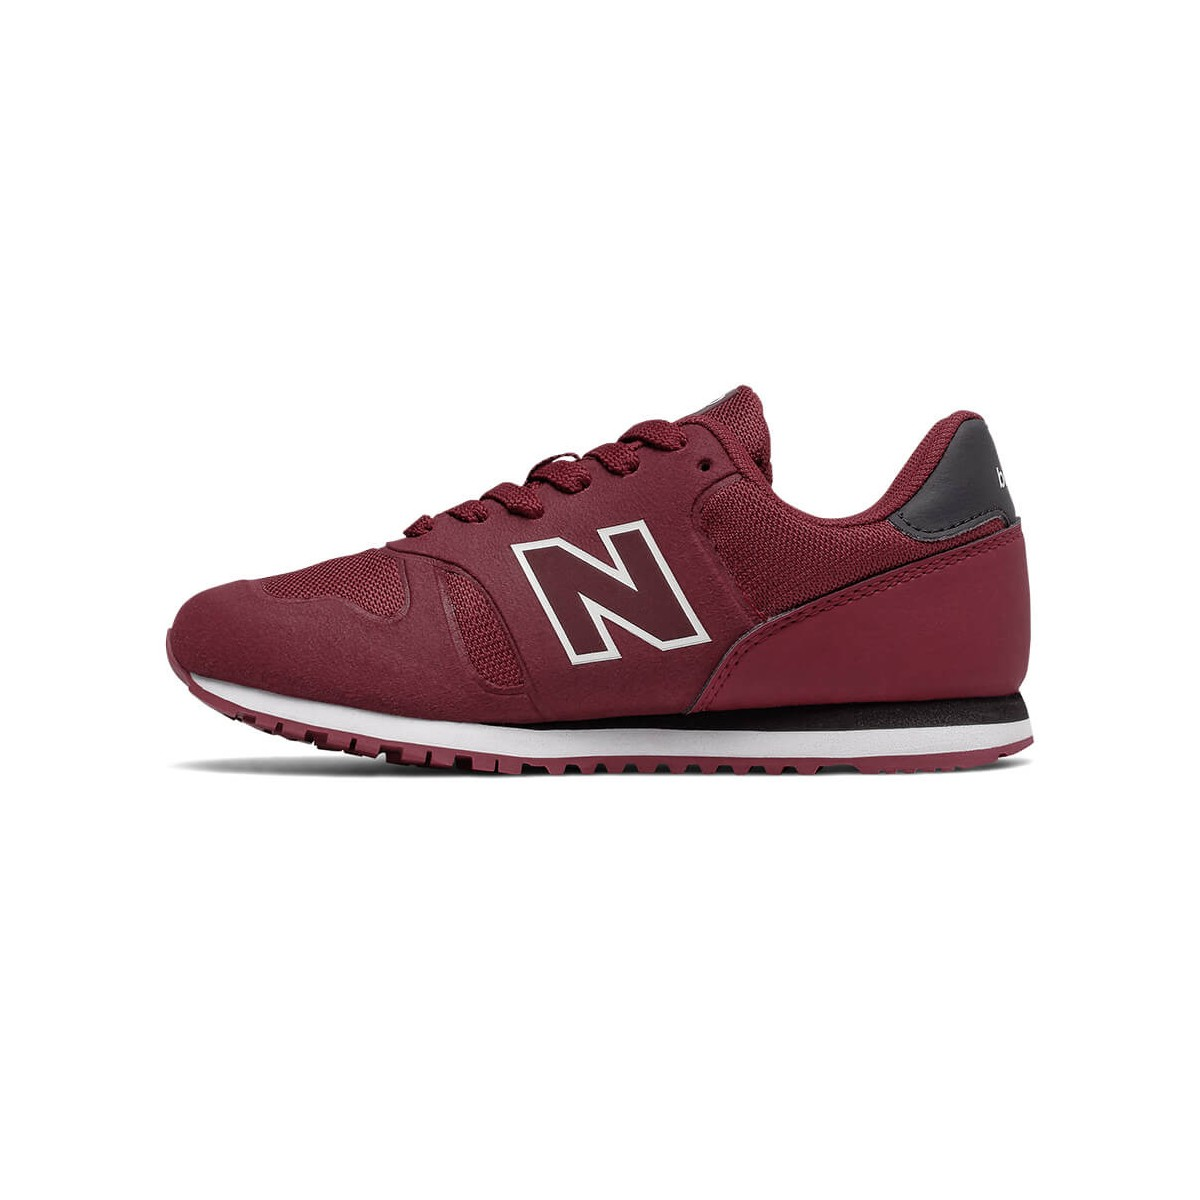 new balance kd373 bordeaux